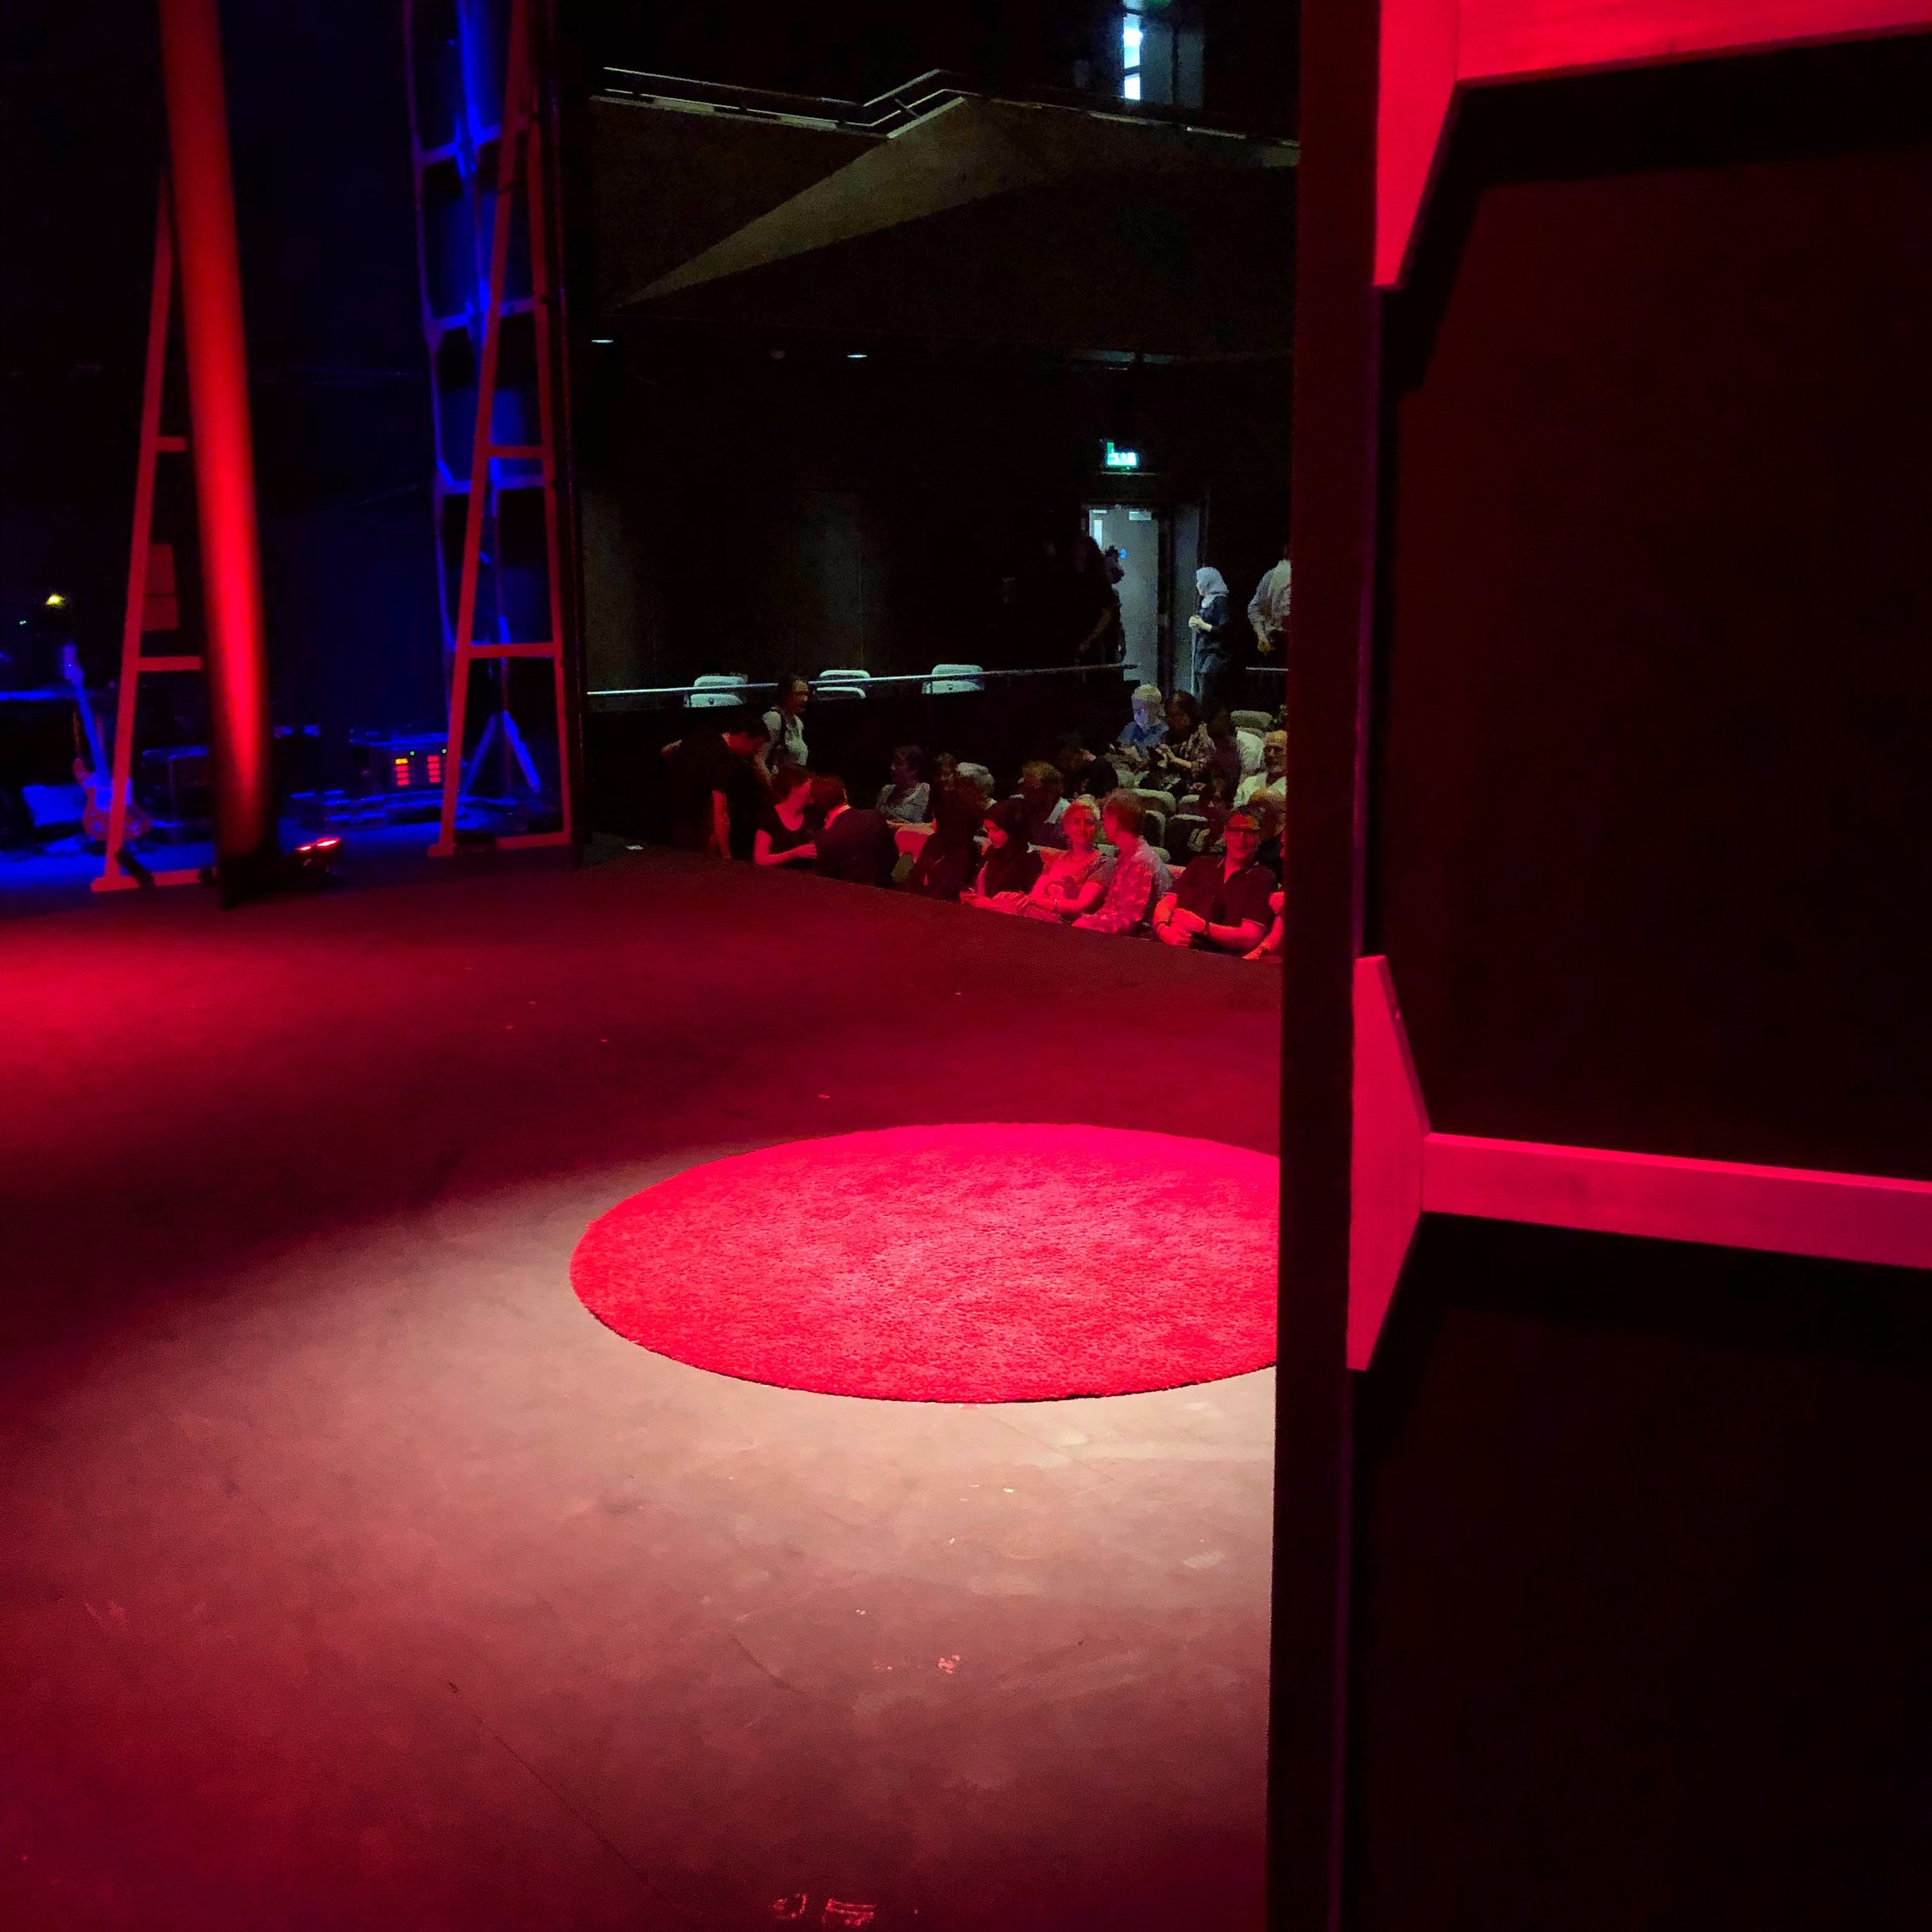 Audience coming in... view from wings - Famous TED red carpet!